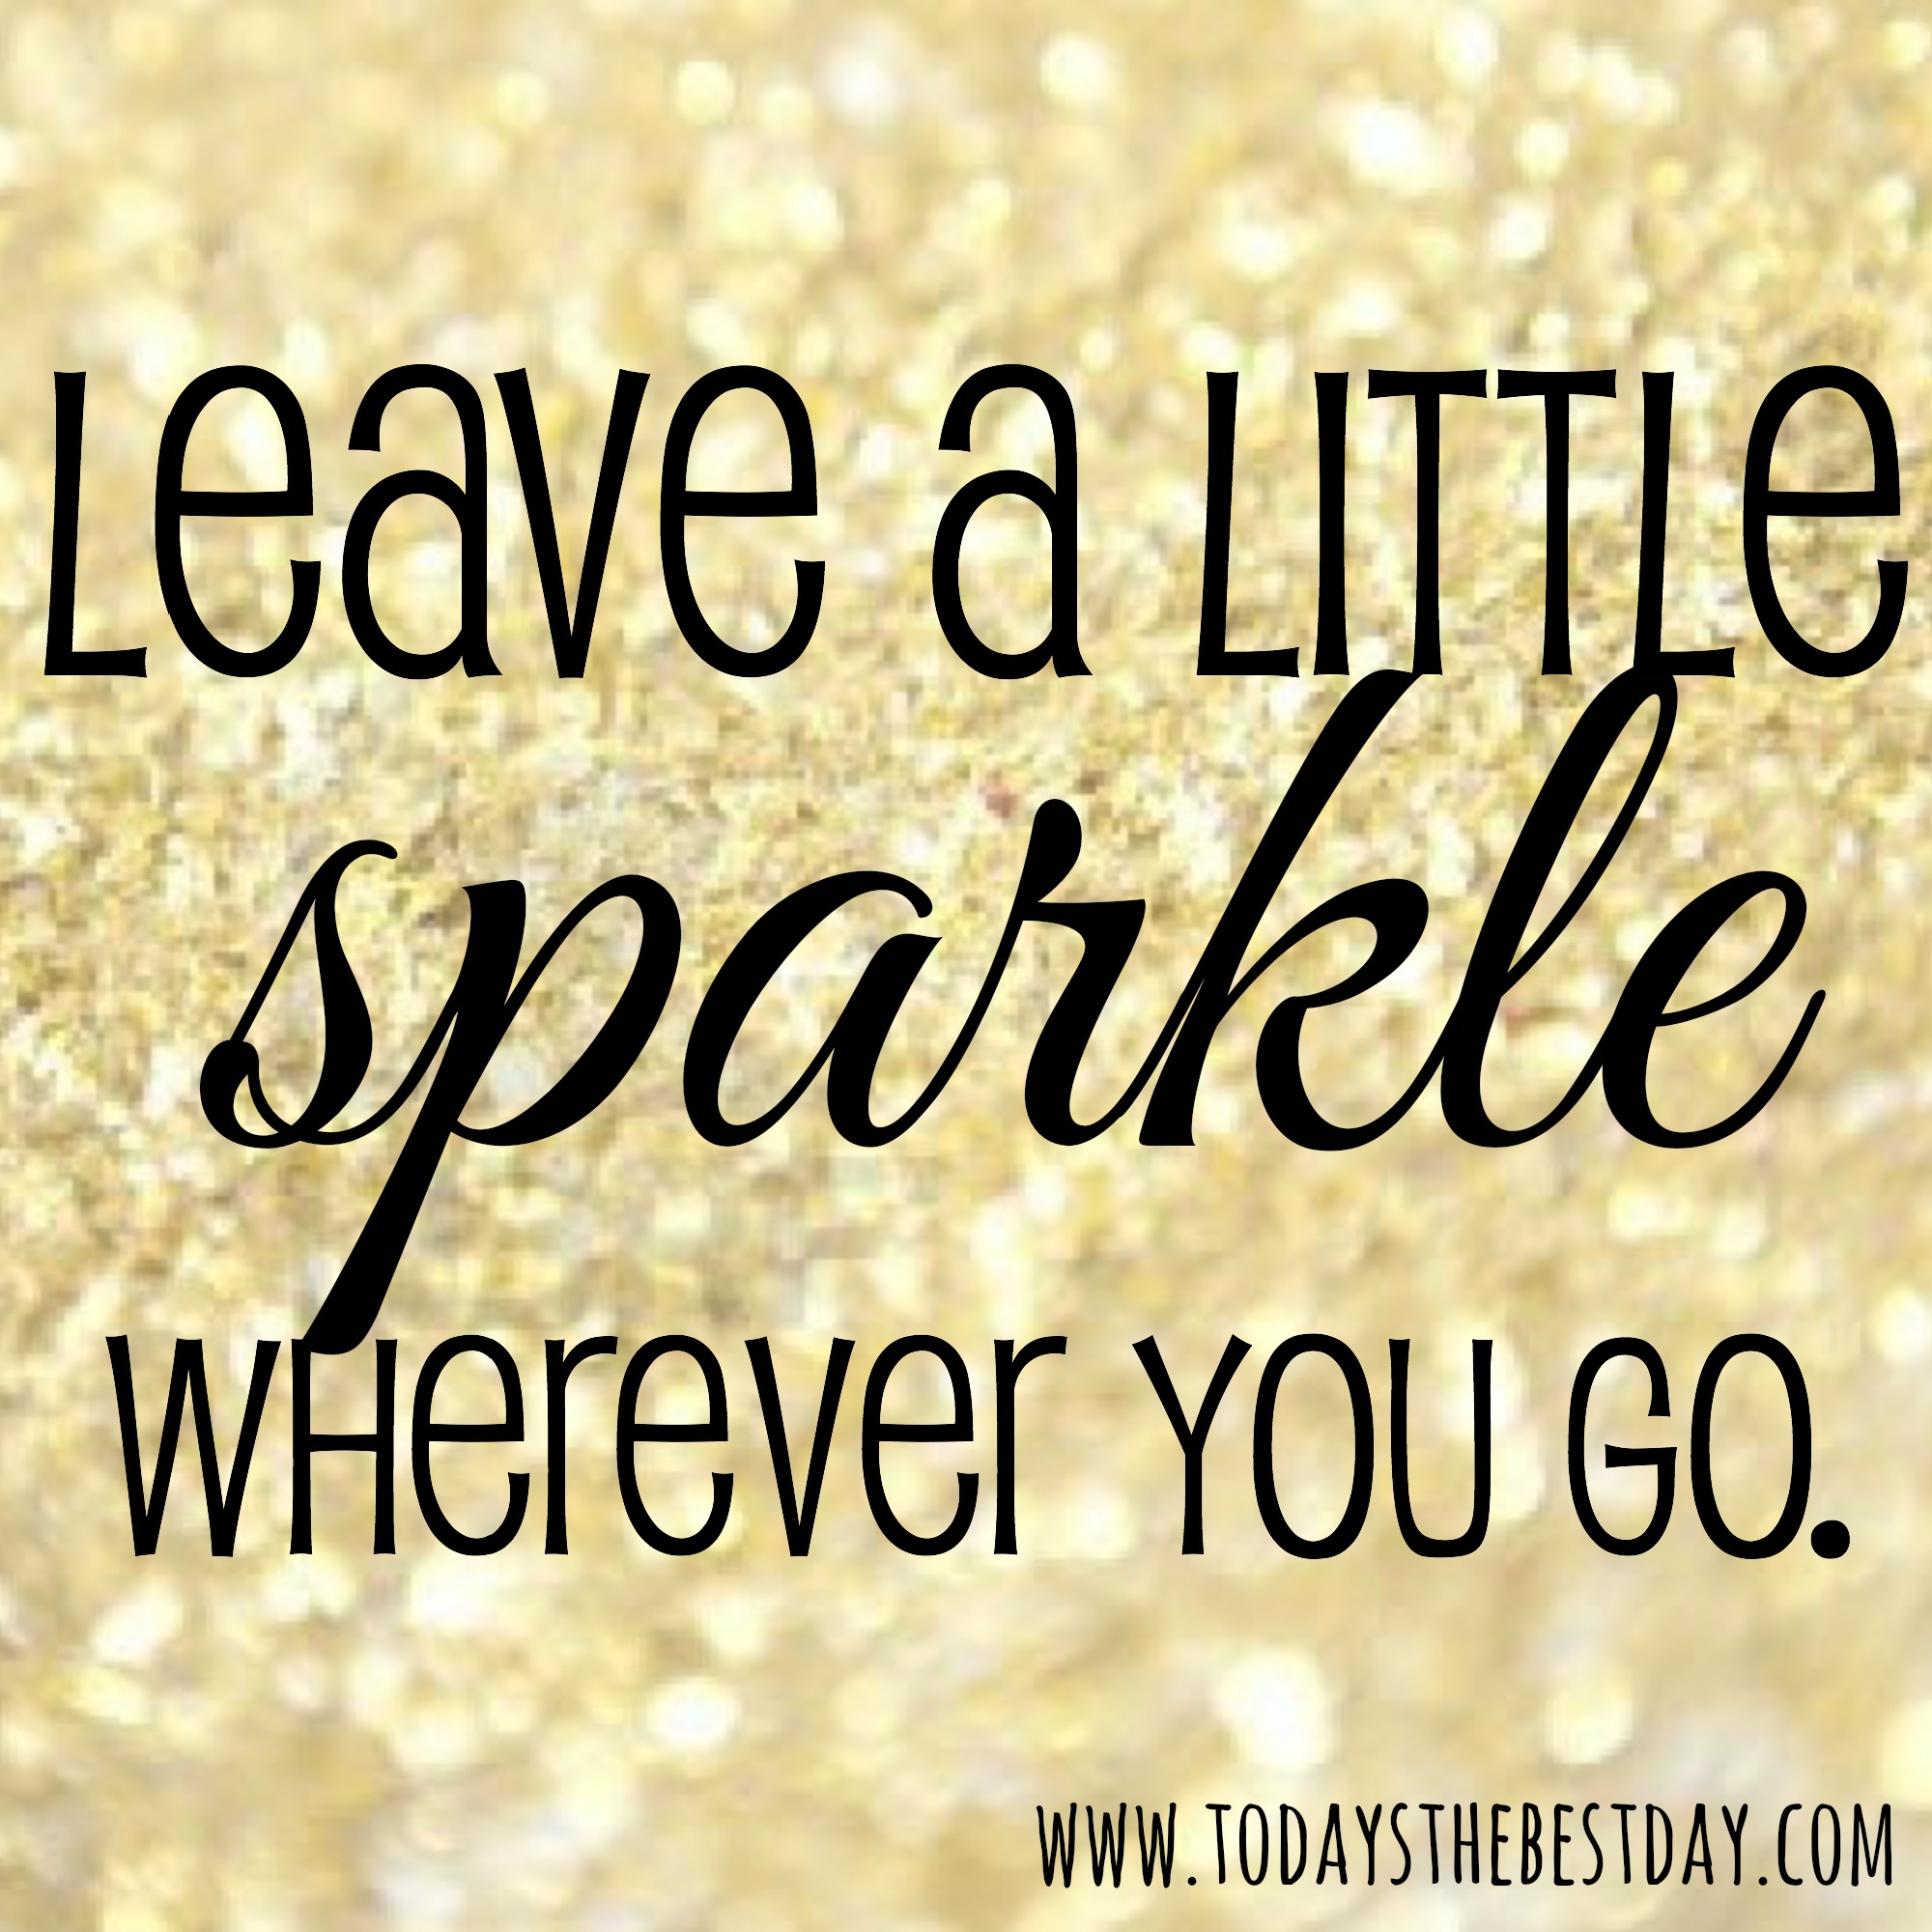 Leave a little sparkle wherever you go - Today's the Best Day